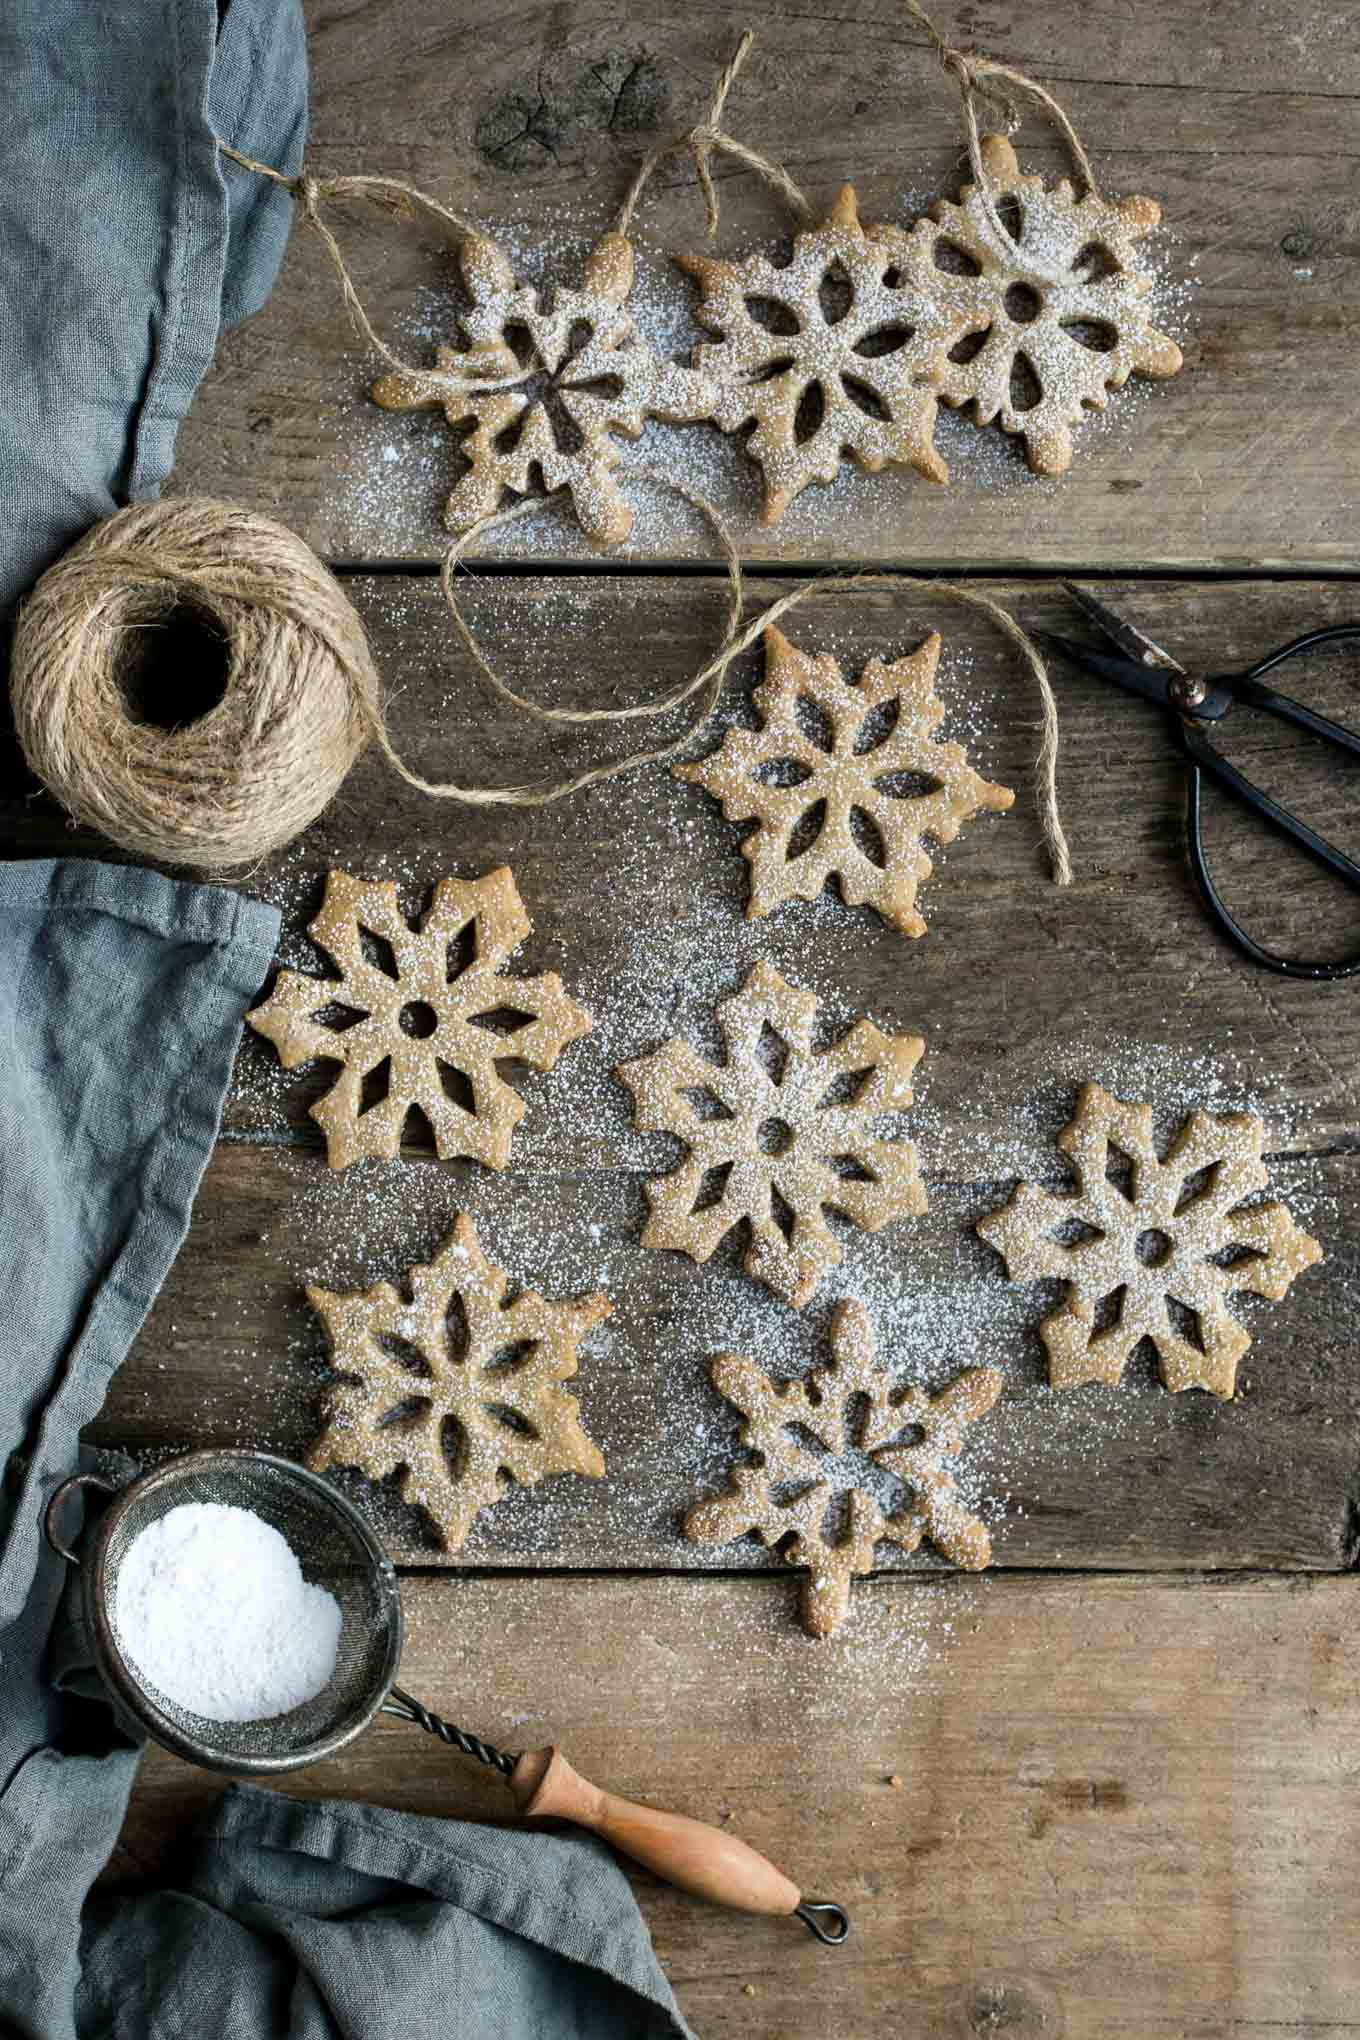 Cinnamon & maple snowflake cookies. These melt-in-your-mouth cookies can also be used to decorate your Christmas tree! #cookies #vegan #Christmas | via @annabanana.co